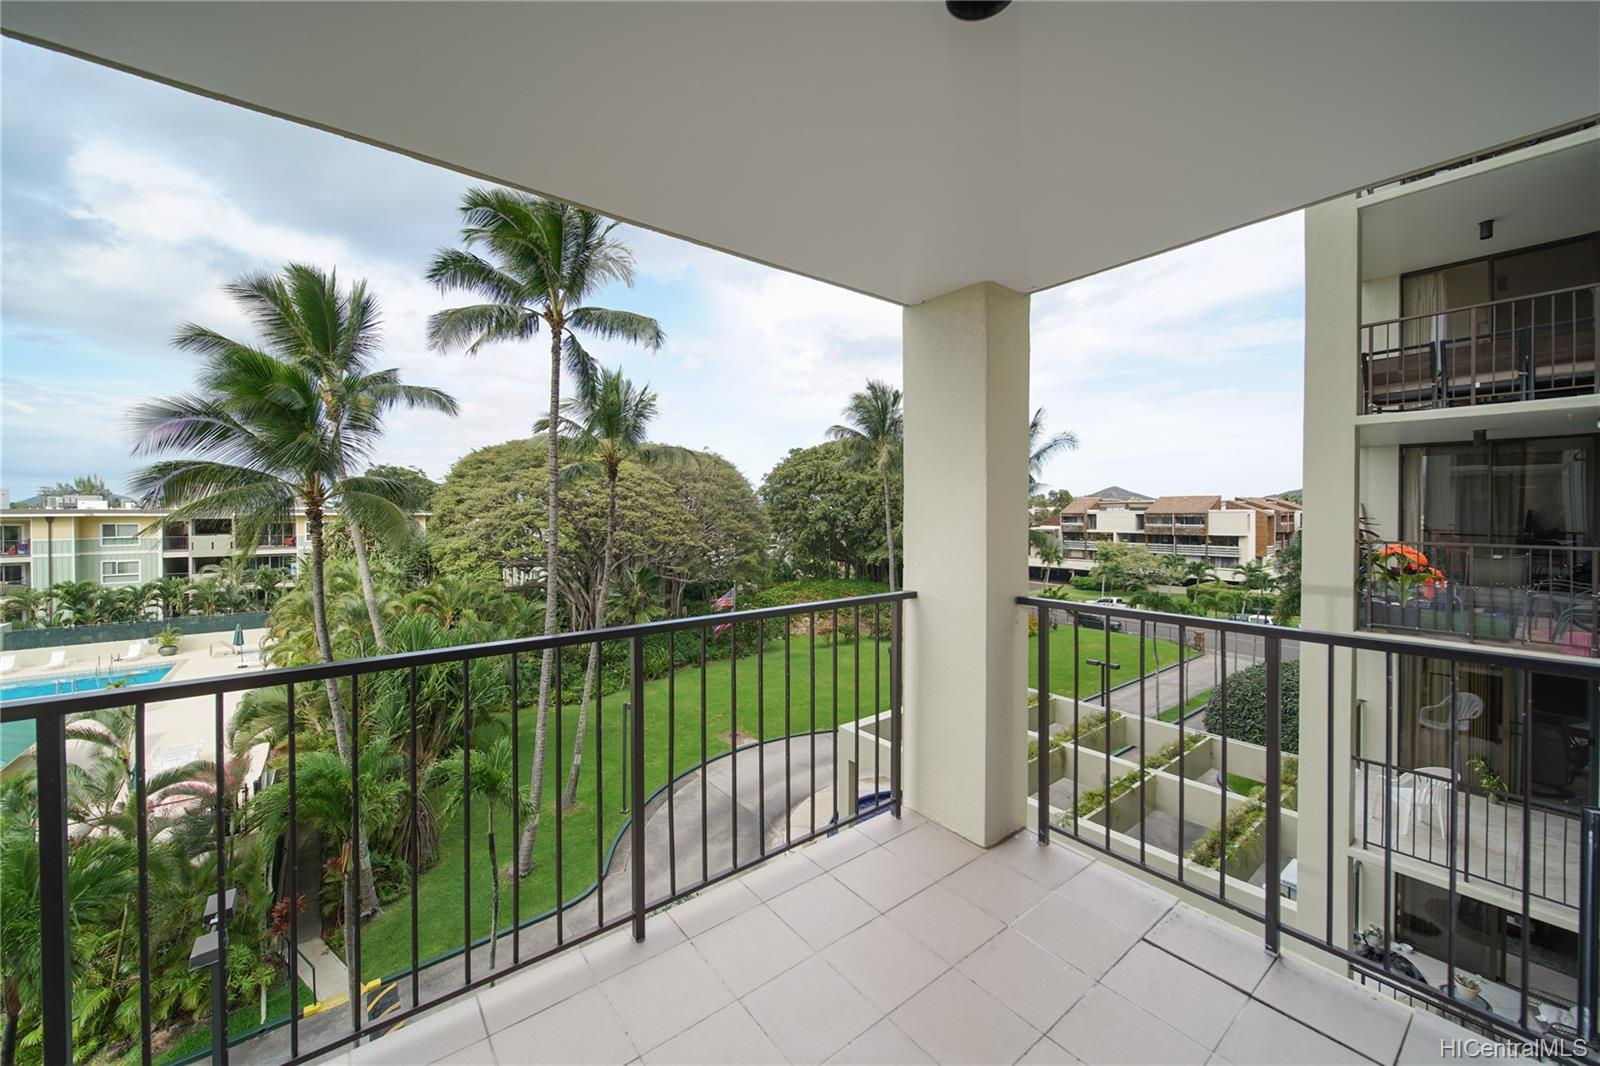 WINDWARD PASSAGE condo # 409, Kailua, Hawaii - photo 14 of 25